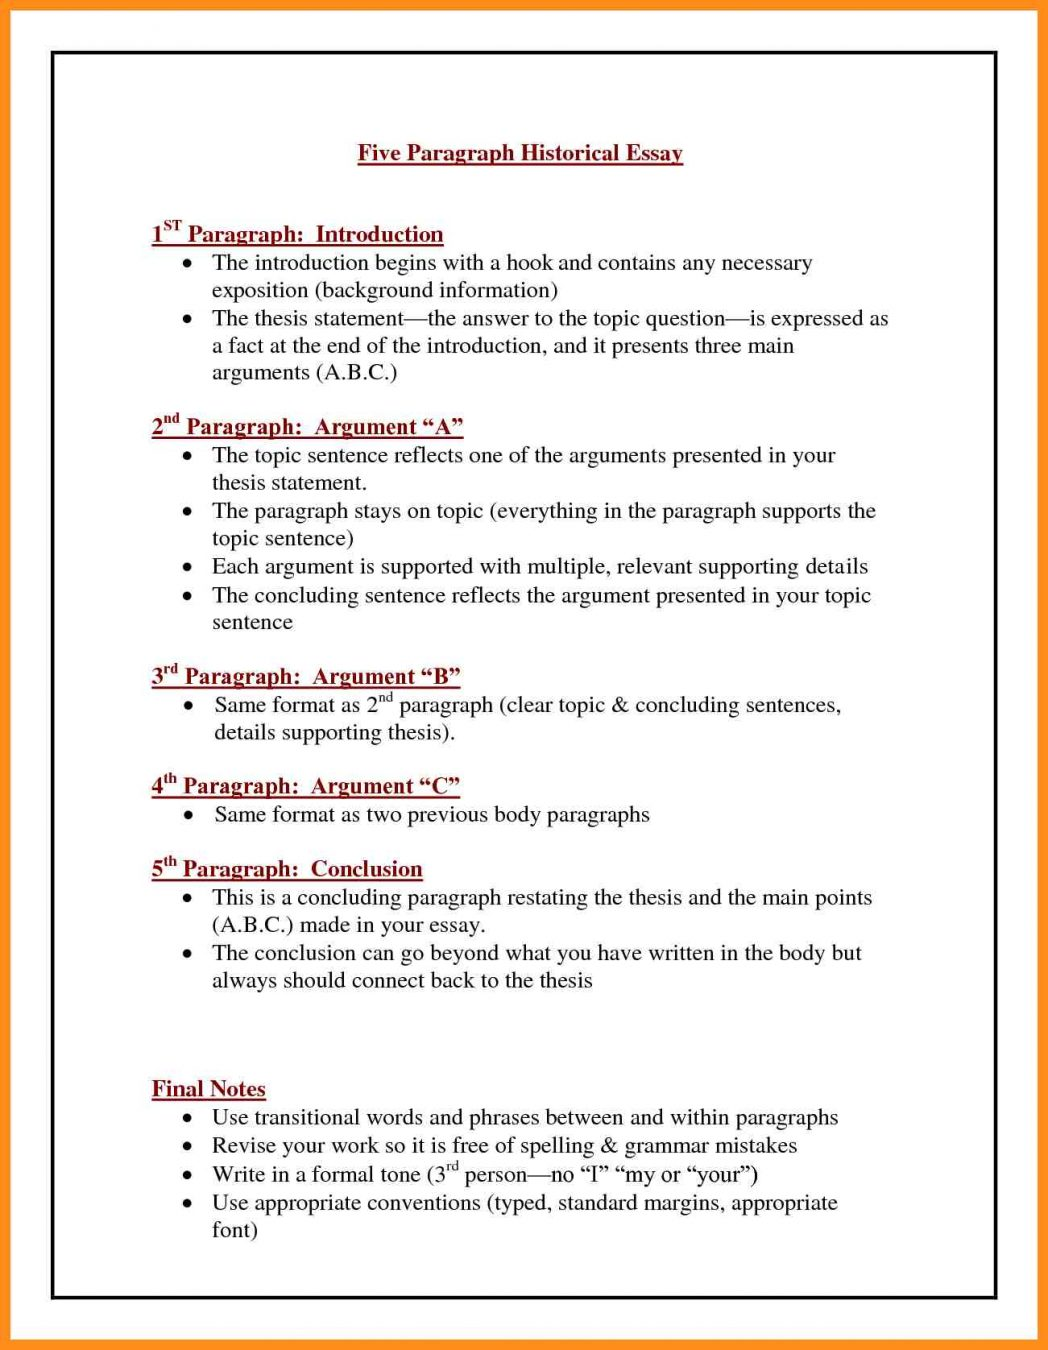 009 How Many Paragraphs Are In Essay Words Introduction Homework Writing Service To Start Off Sentence An Best Ideas Of Sample Five Paragraph Amazing Word Is Par End Formidable A Argumentative Thematic Synthesis Full